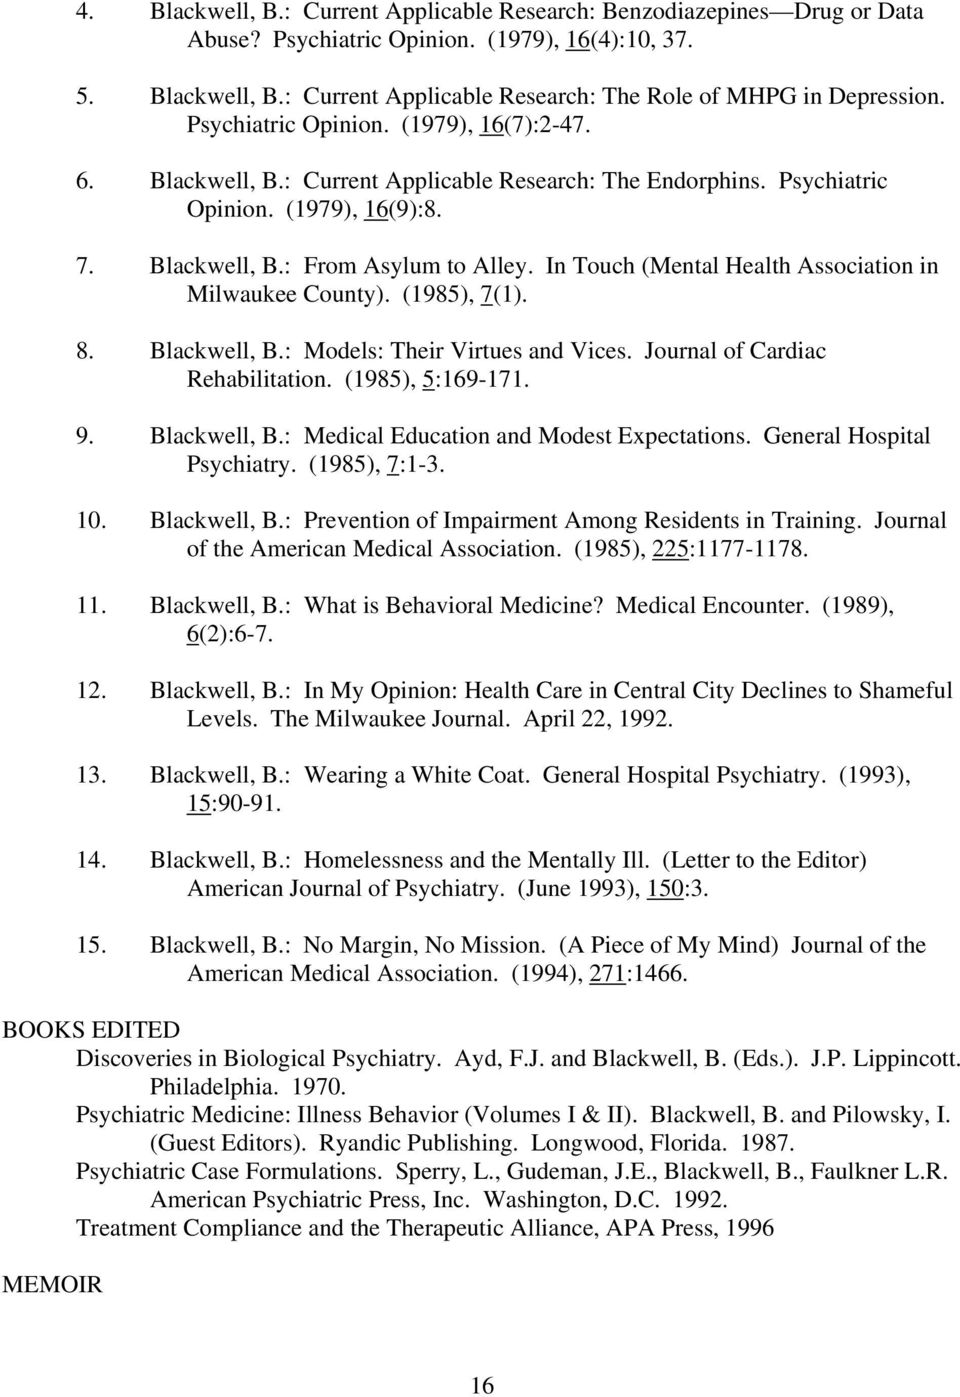 In Touch (Mental Health Association in Milwaukee County). (1985), 7(1). 8. Blackwell, B.: Models: Their Virtues and Vices. Journal of Cardiac Rehabilitation. (1985), 5:169-171. 9. Blackwell, B.: Medical Education and Modest Expectations.